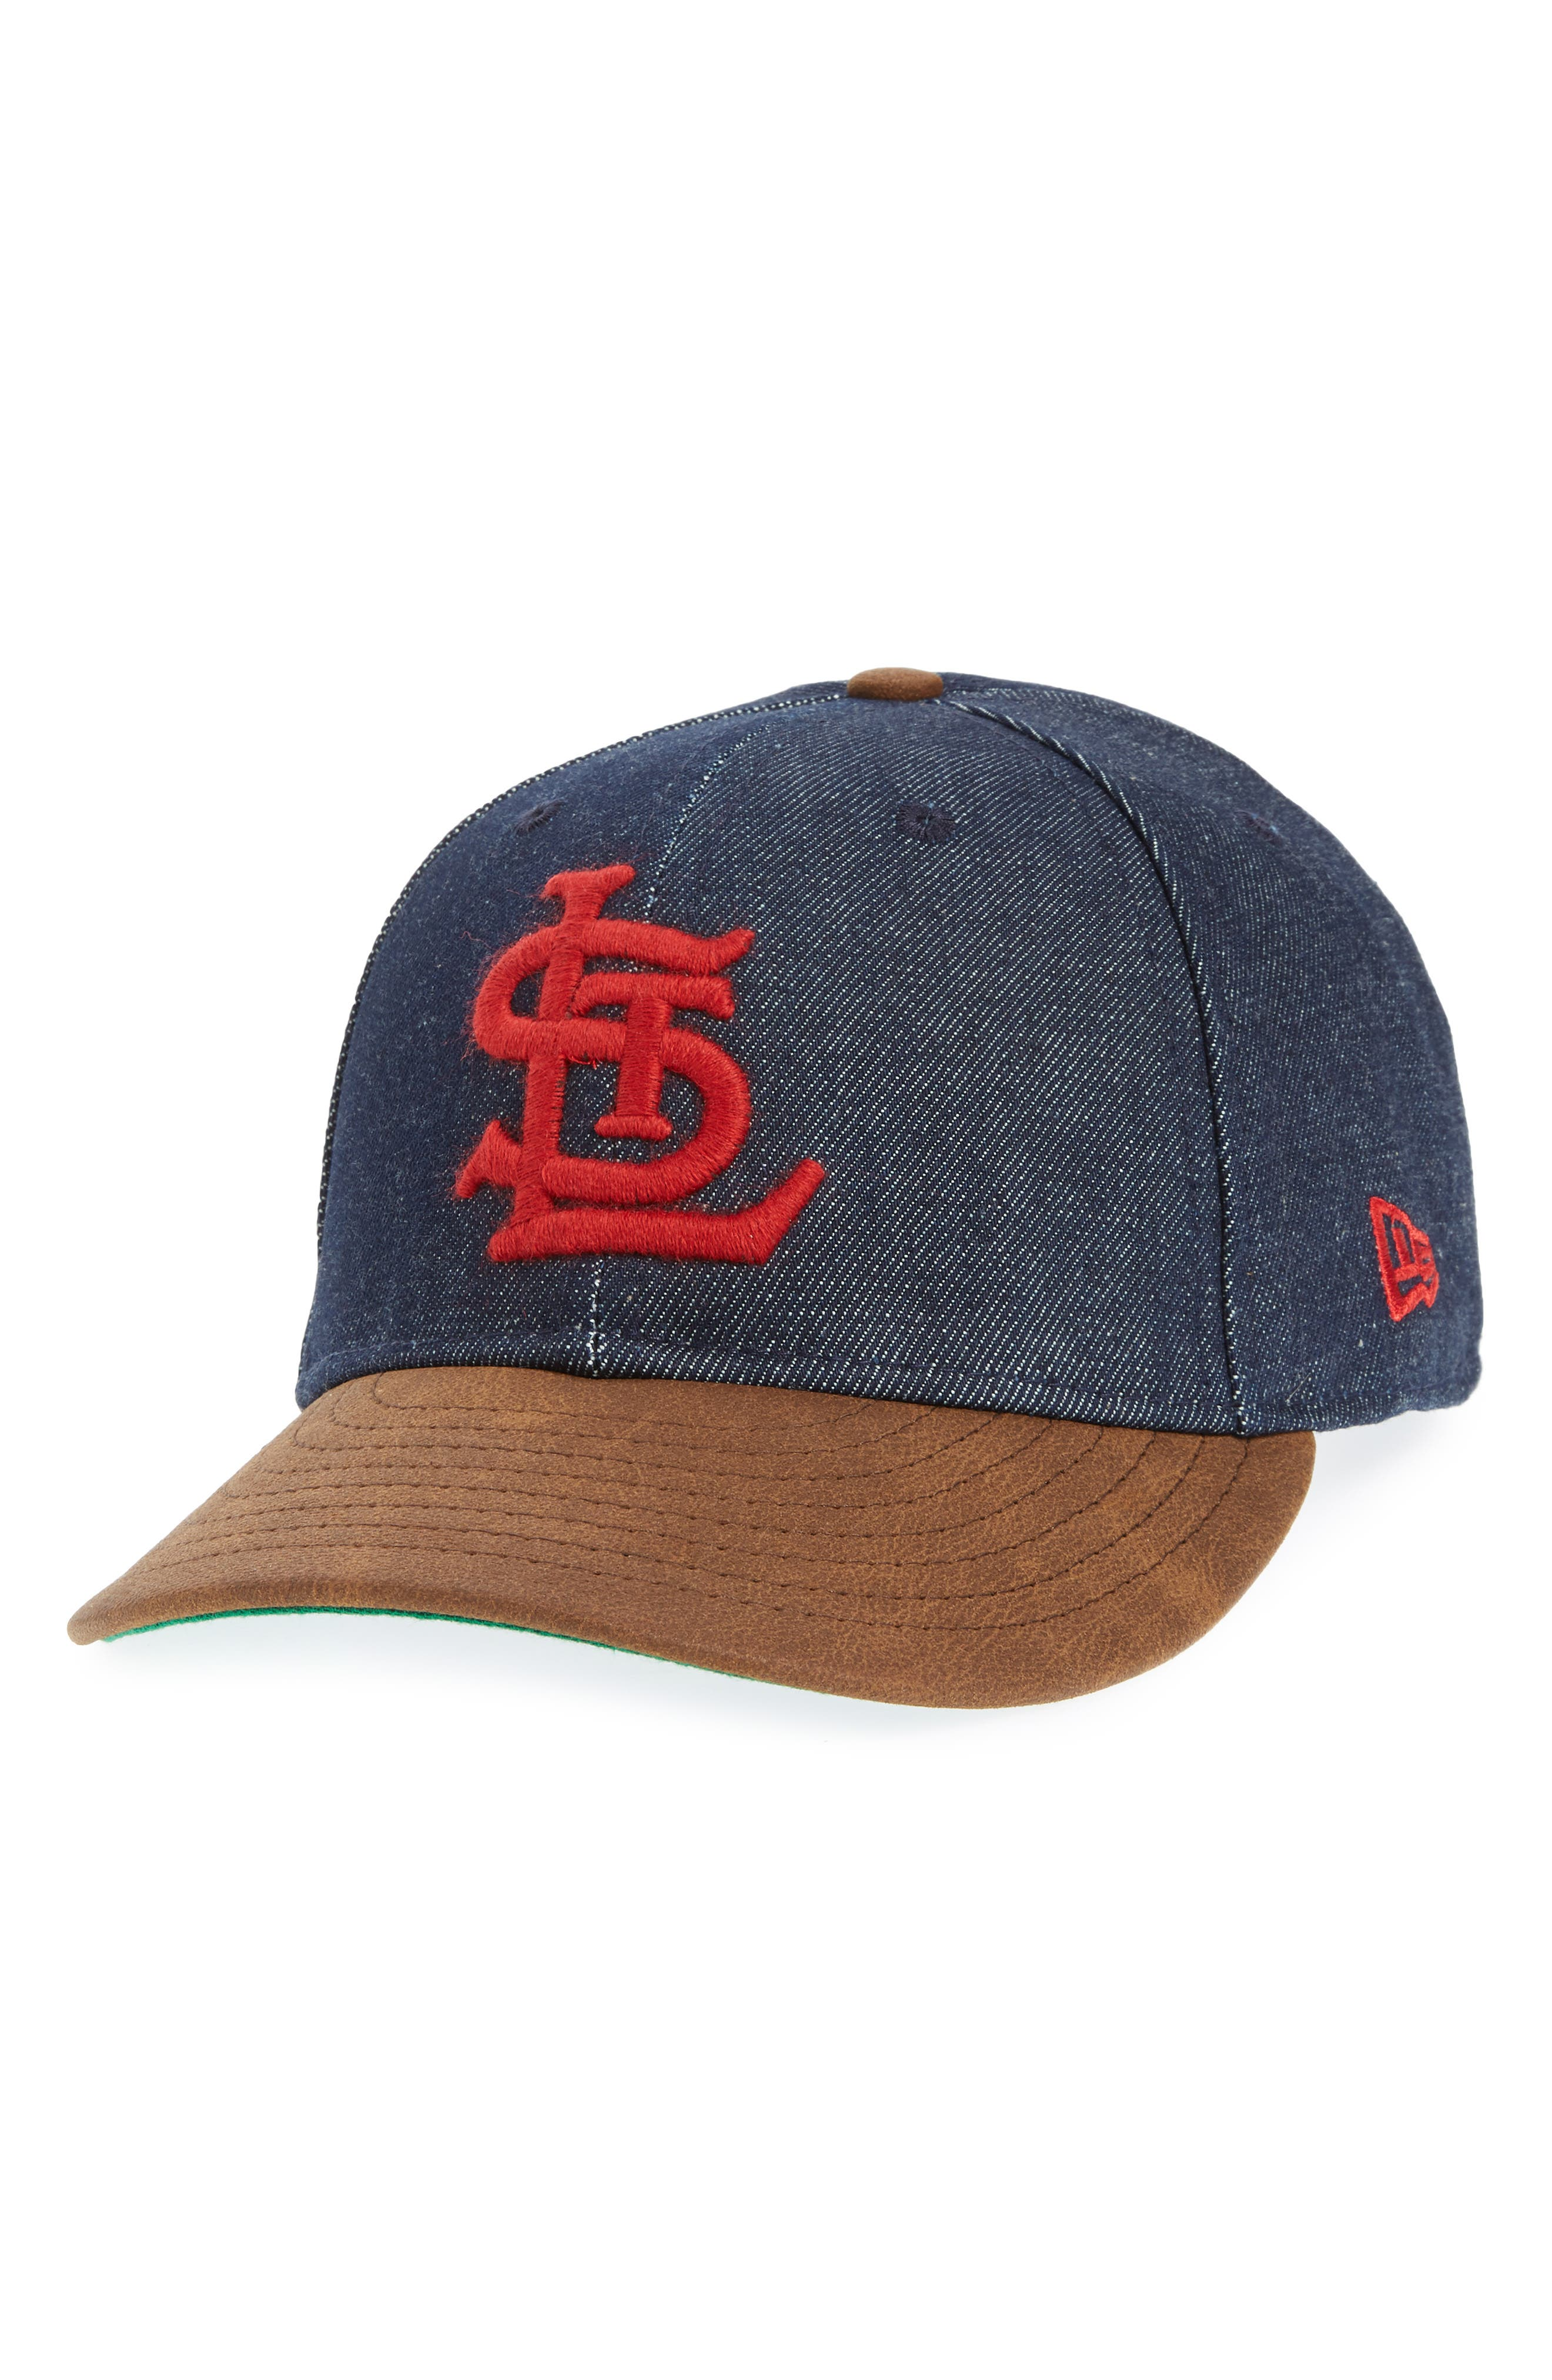 d32fec7f56b New Era X Levi S Mlb Logo Ball Cap - Black In St Louis Cardinals ...